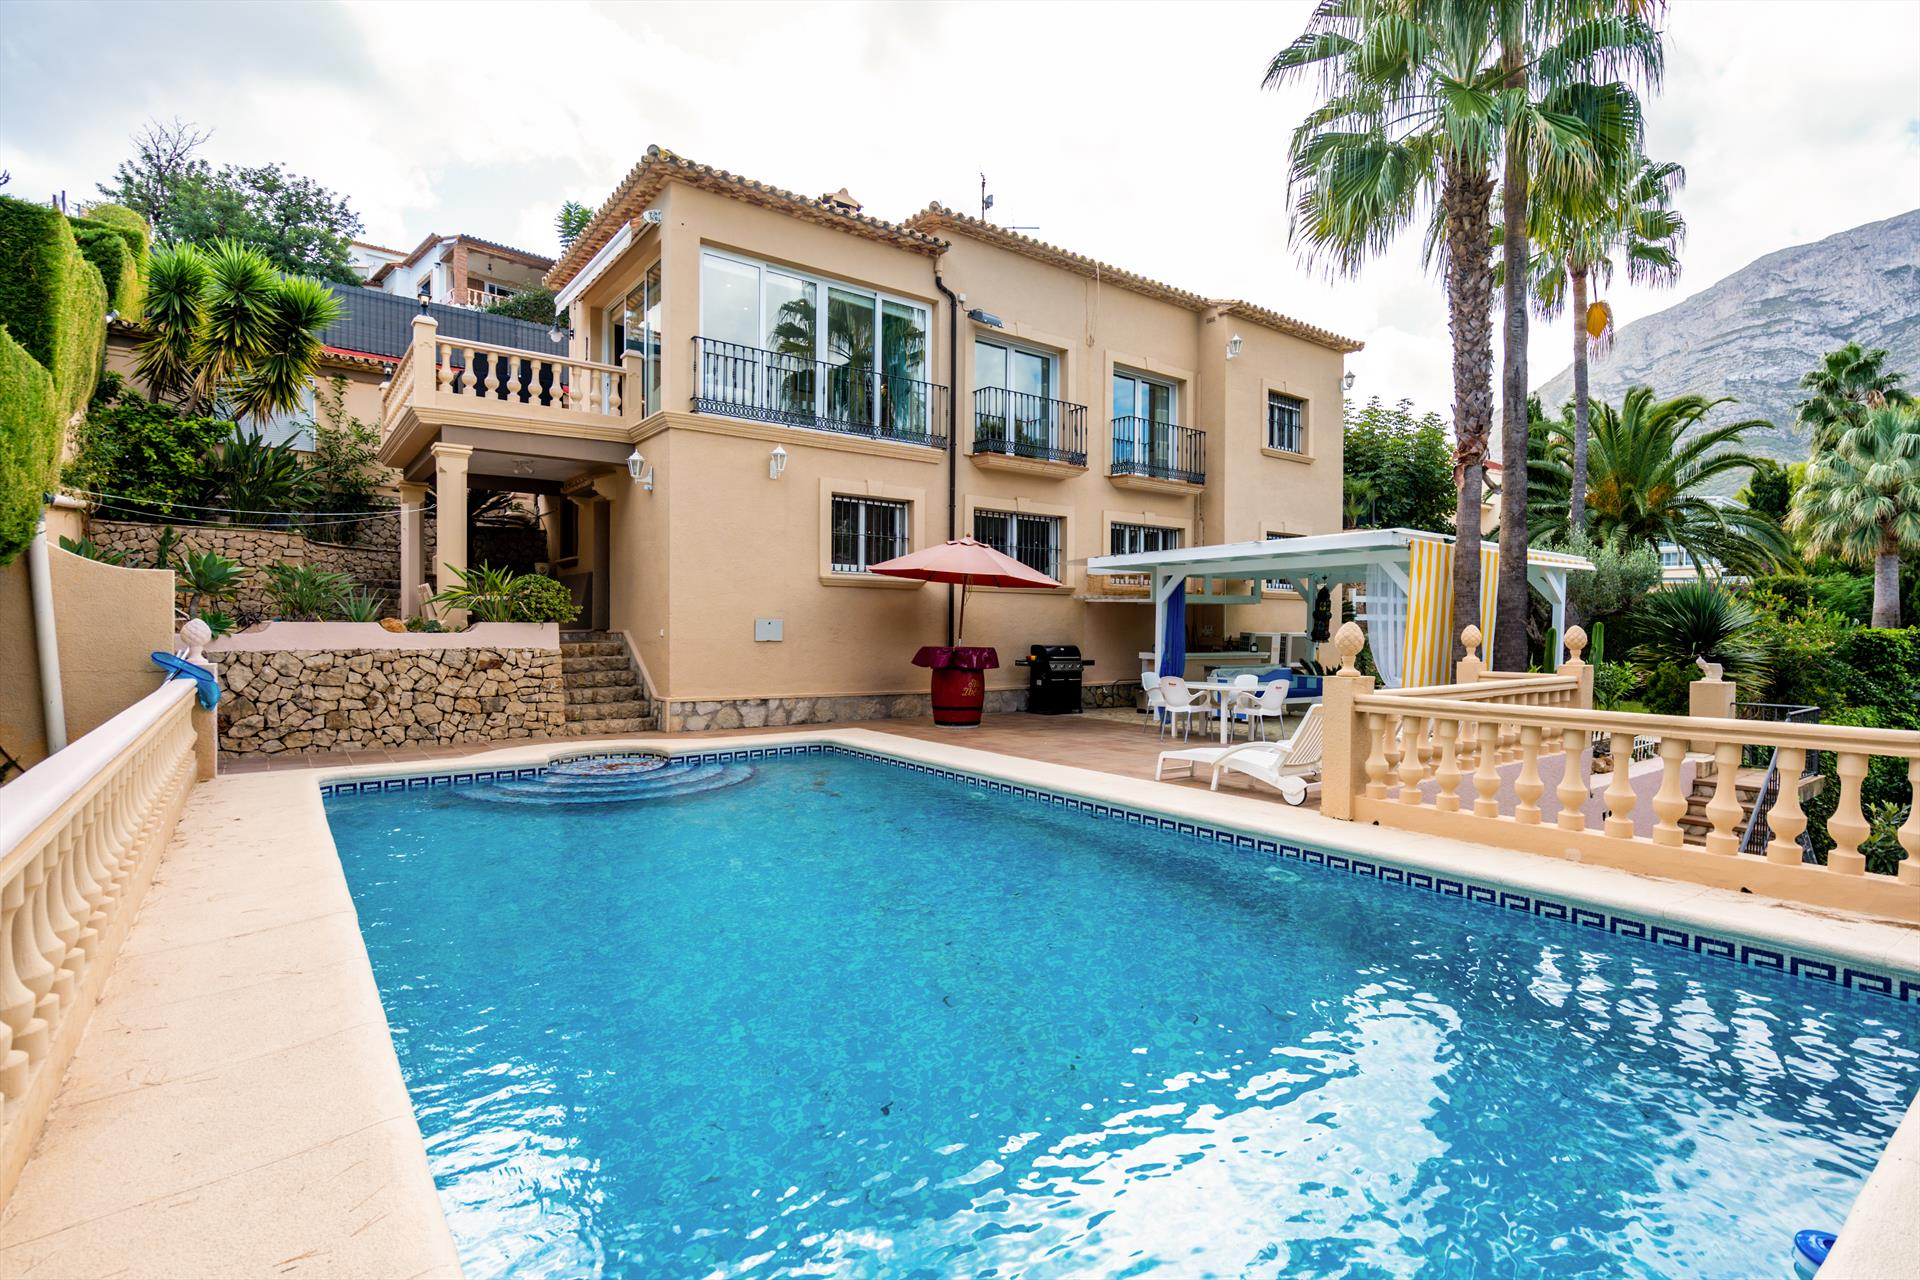 Flavie, Large and classic villa in Denia, on the Costa Blanca, Spain  with private pool for 12 persons.....